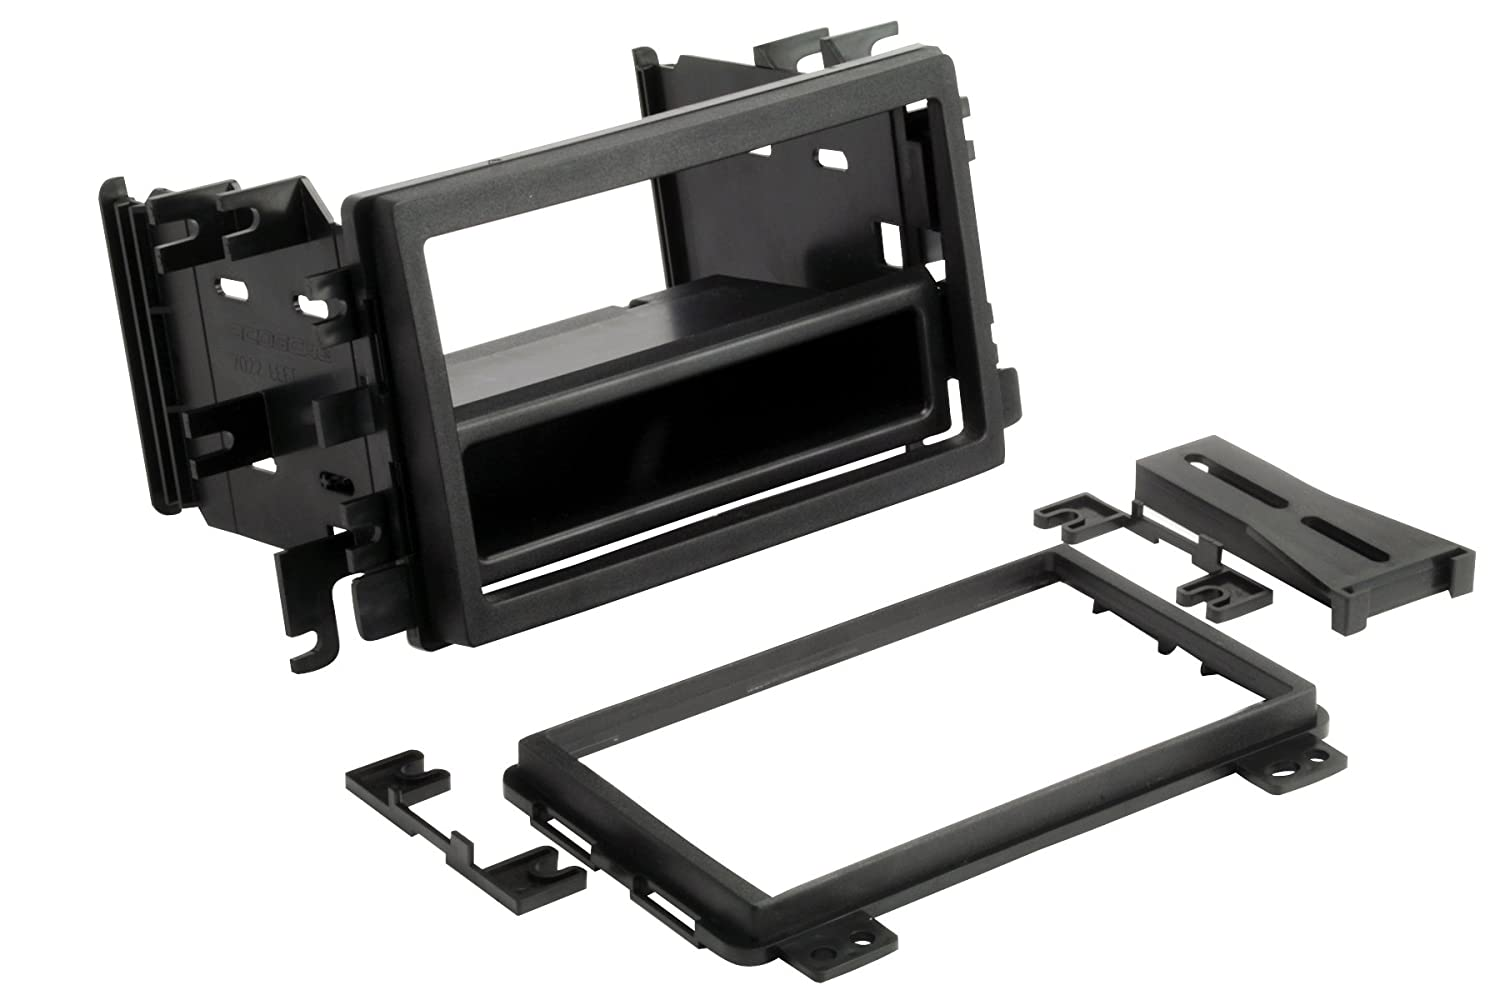 SCOSCHE1995-Up Ford/Mercury/Lincoln/Mazda Double DIN and DIN with pocket